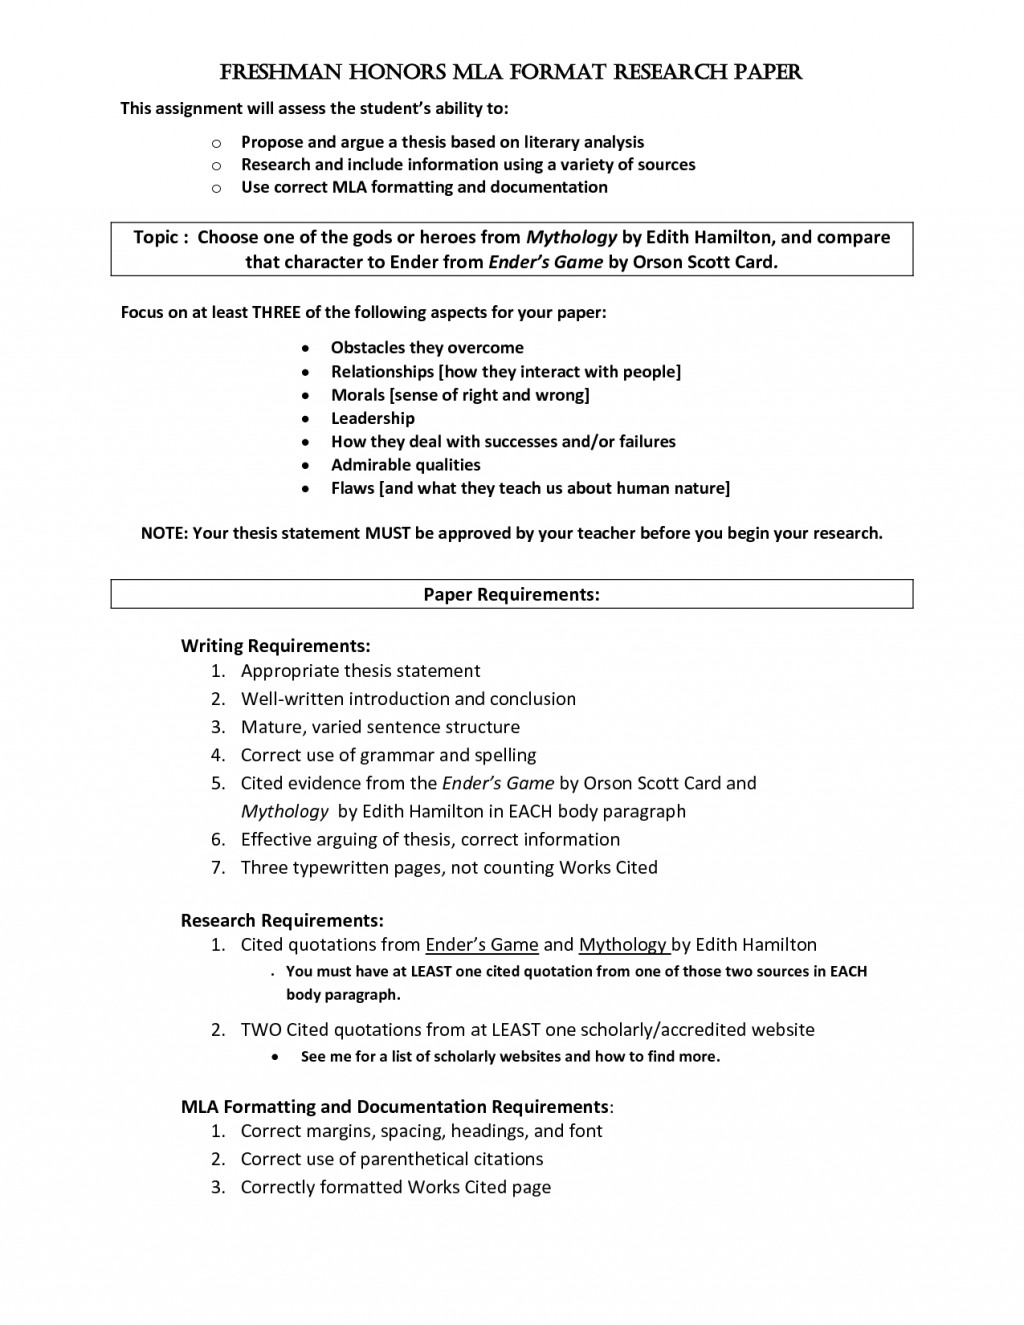 012 Research Paper Mla Format Section Headings Breathtaking Heading Spacing Large